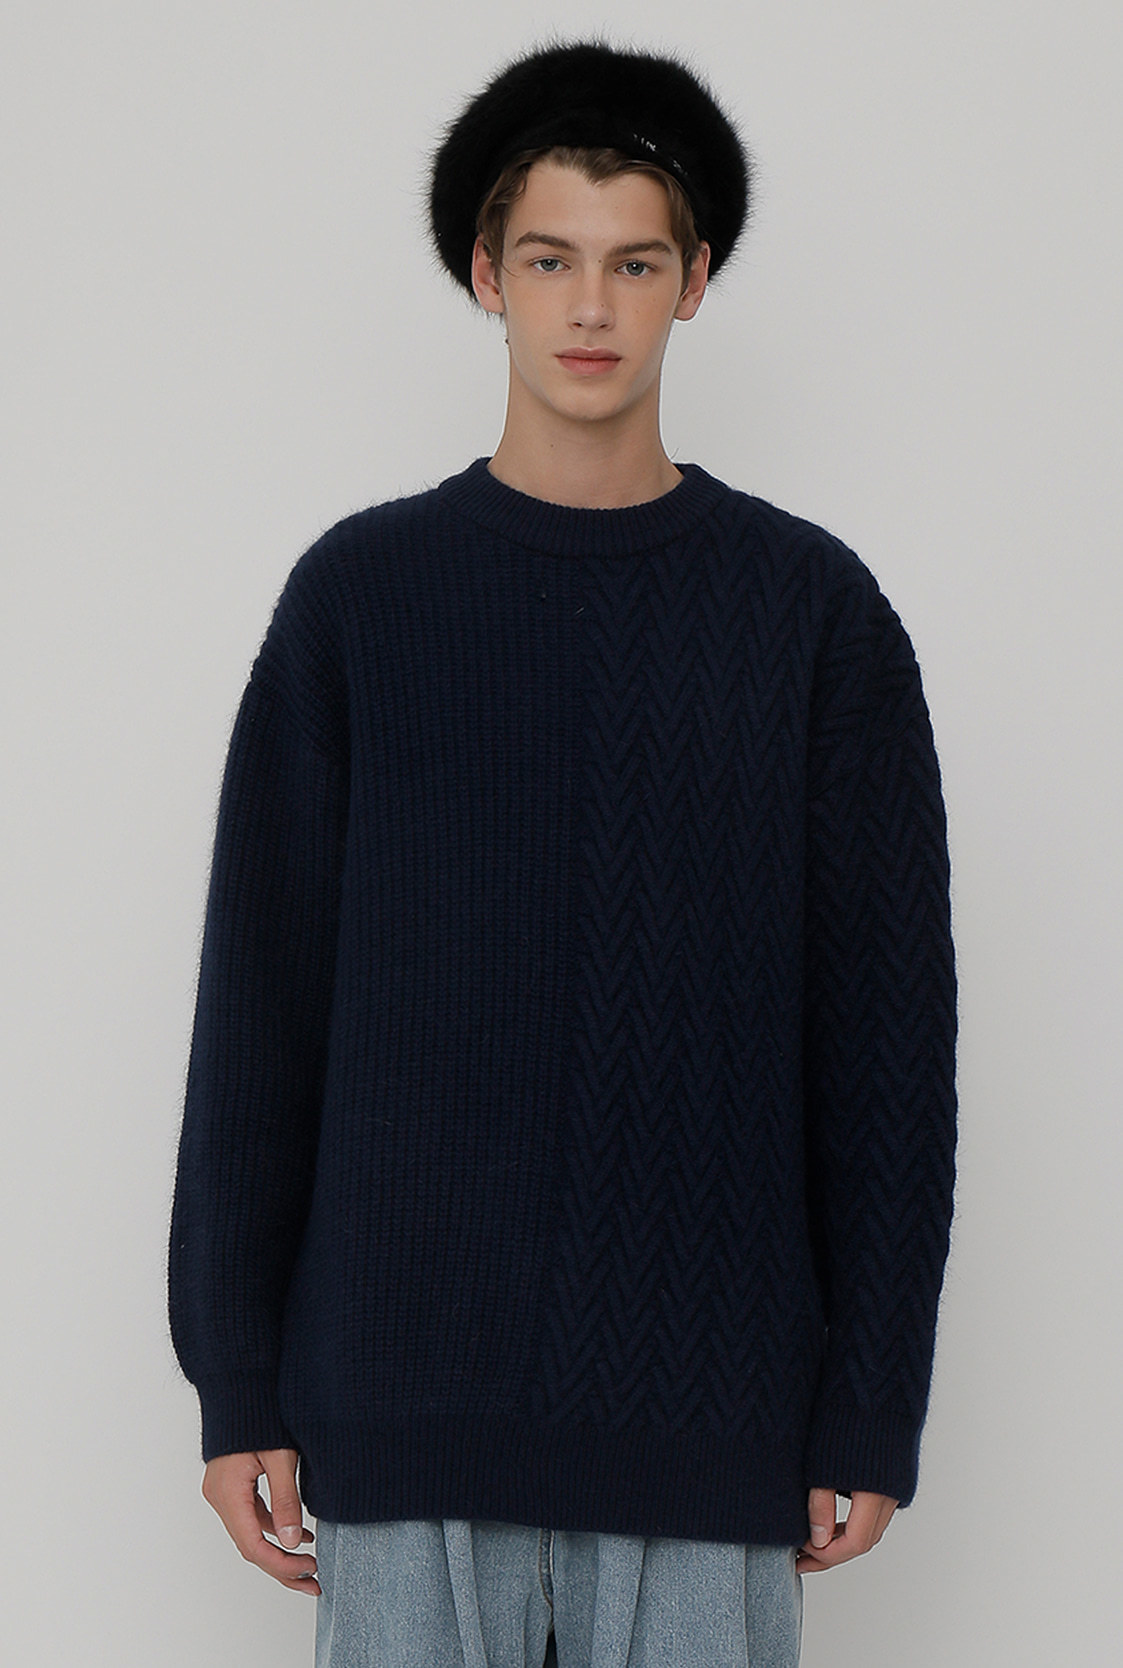 [이재욱 착용] M)R V CABLE KNIT_NAVY